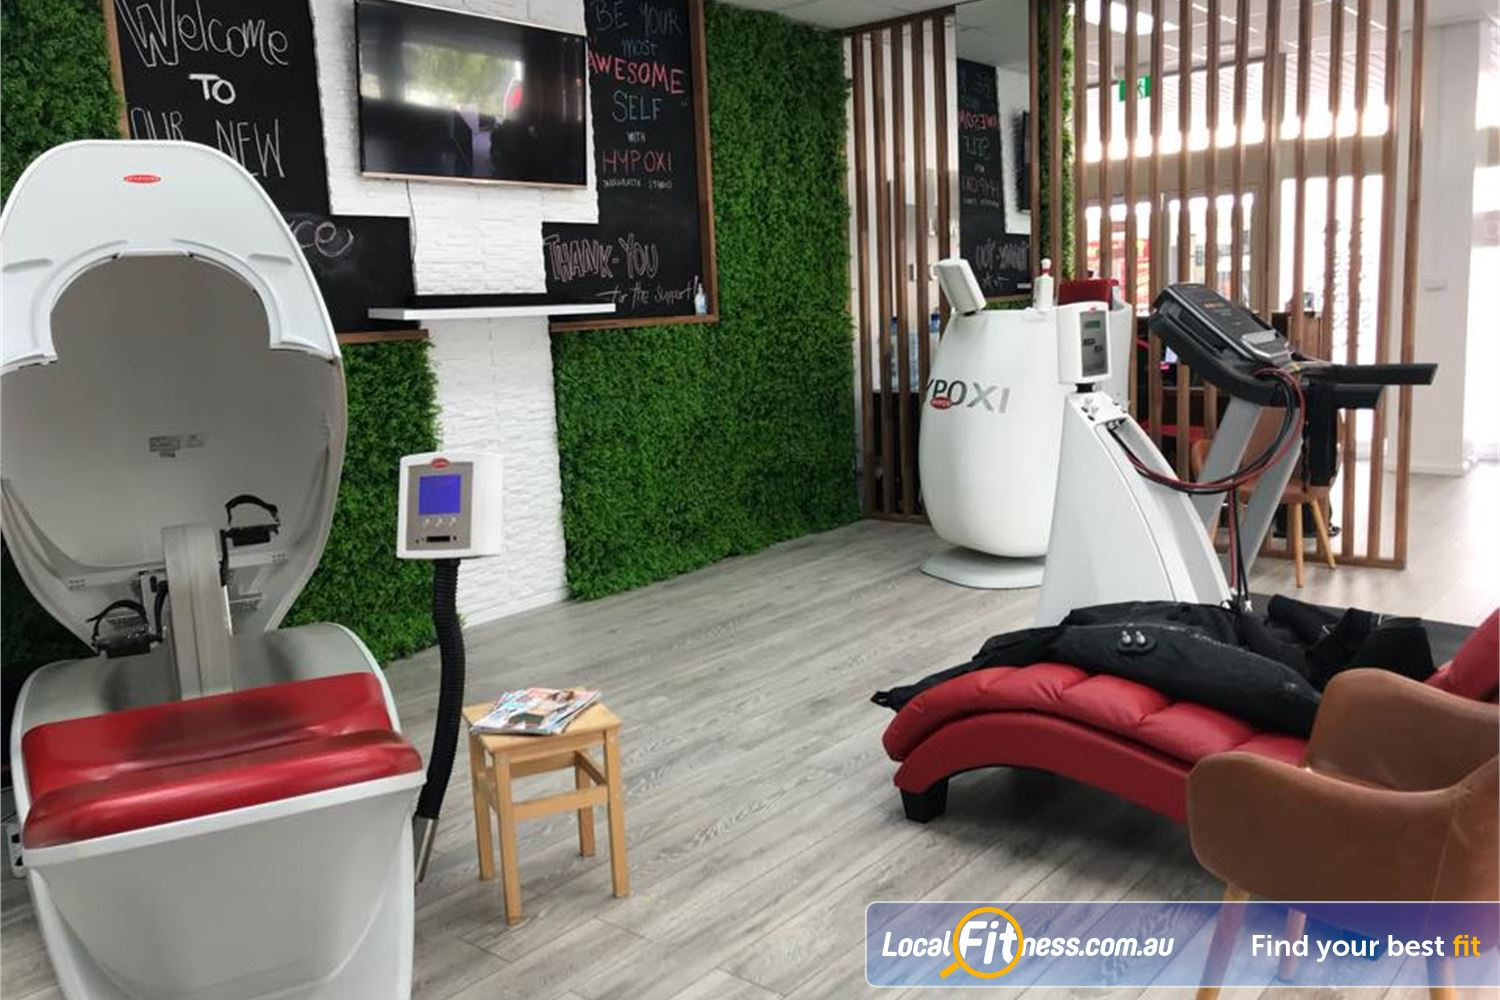 HYPOXI Weight Loss Near Brooklyn Help your body work smarter, not harder in our HYPOXI Port Melbourne weight loss studio.